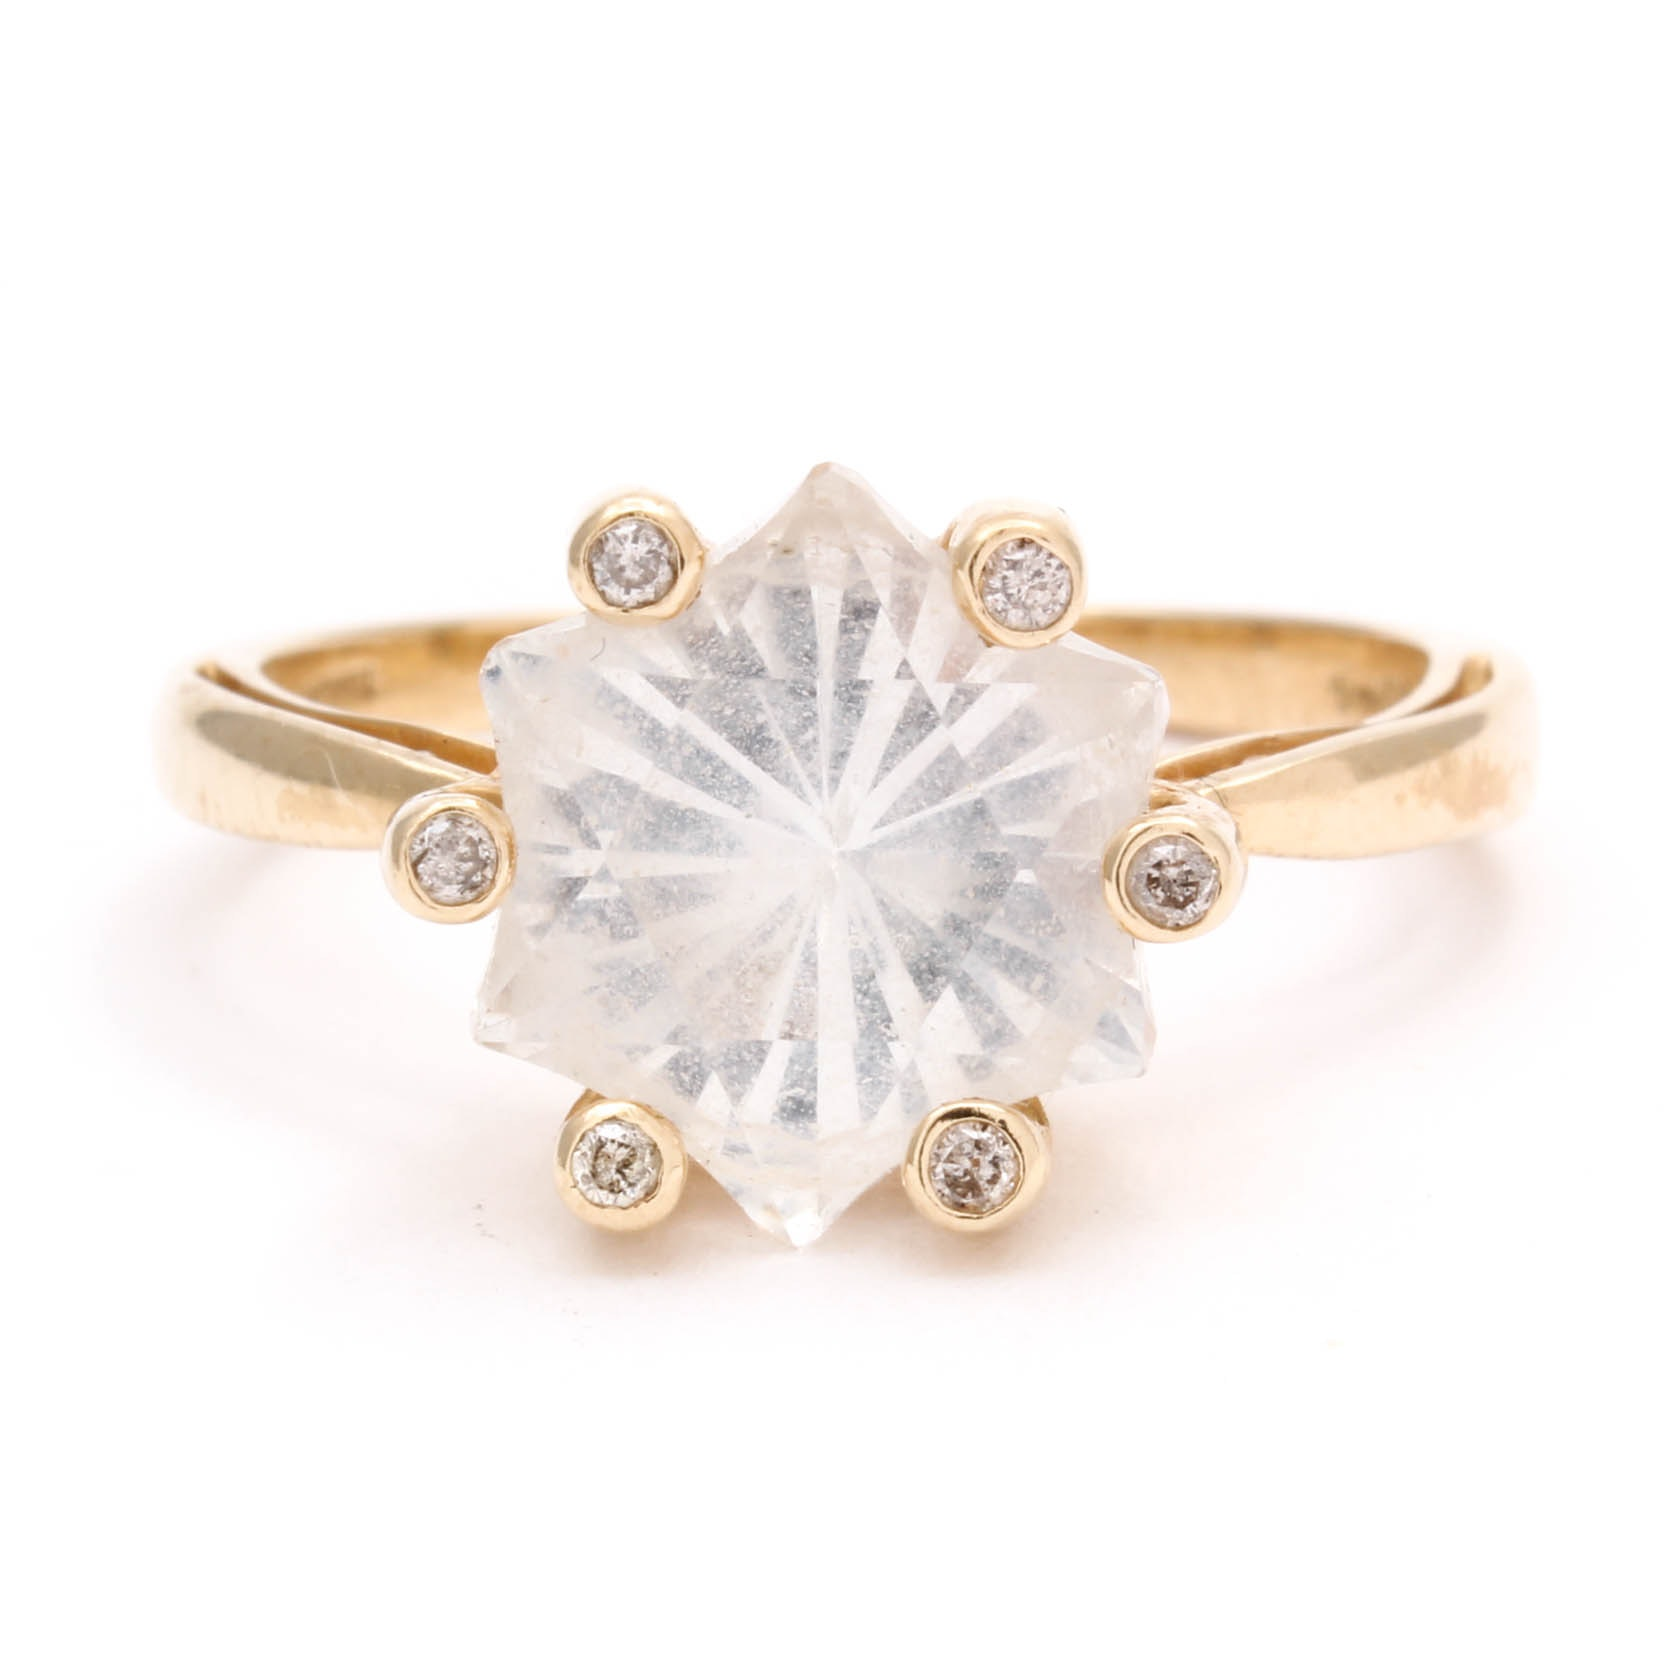 14K Yellow Gold Quartz Ring with Diamond Accents